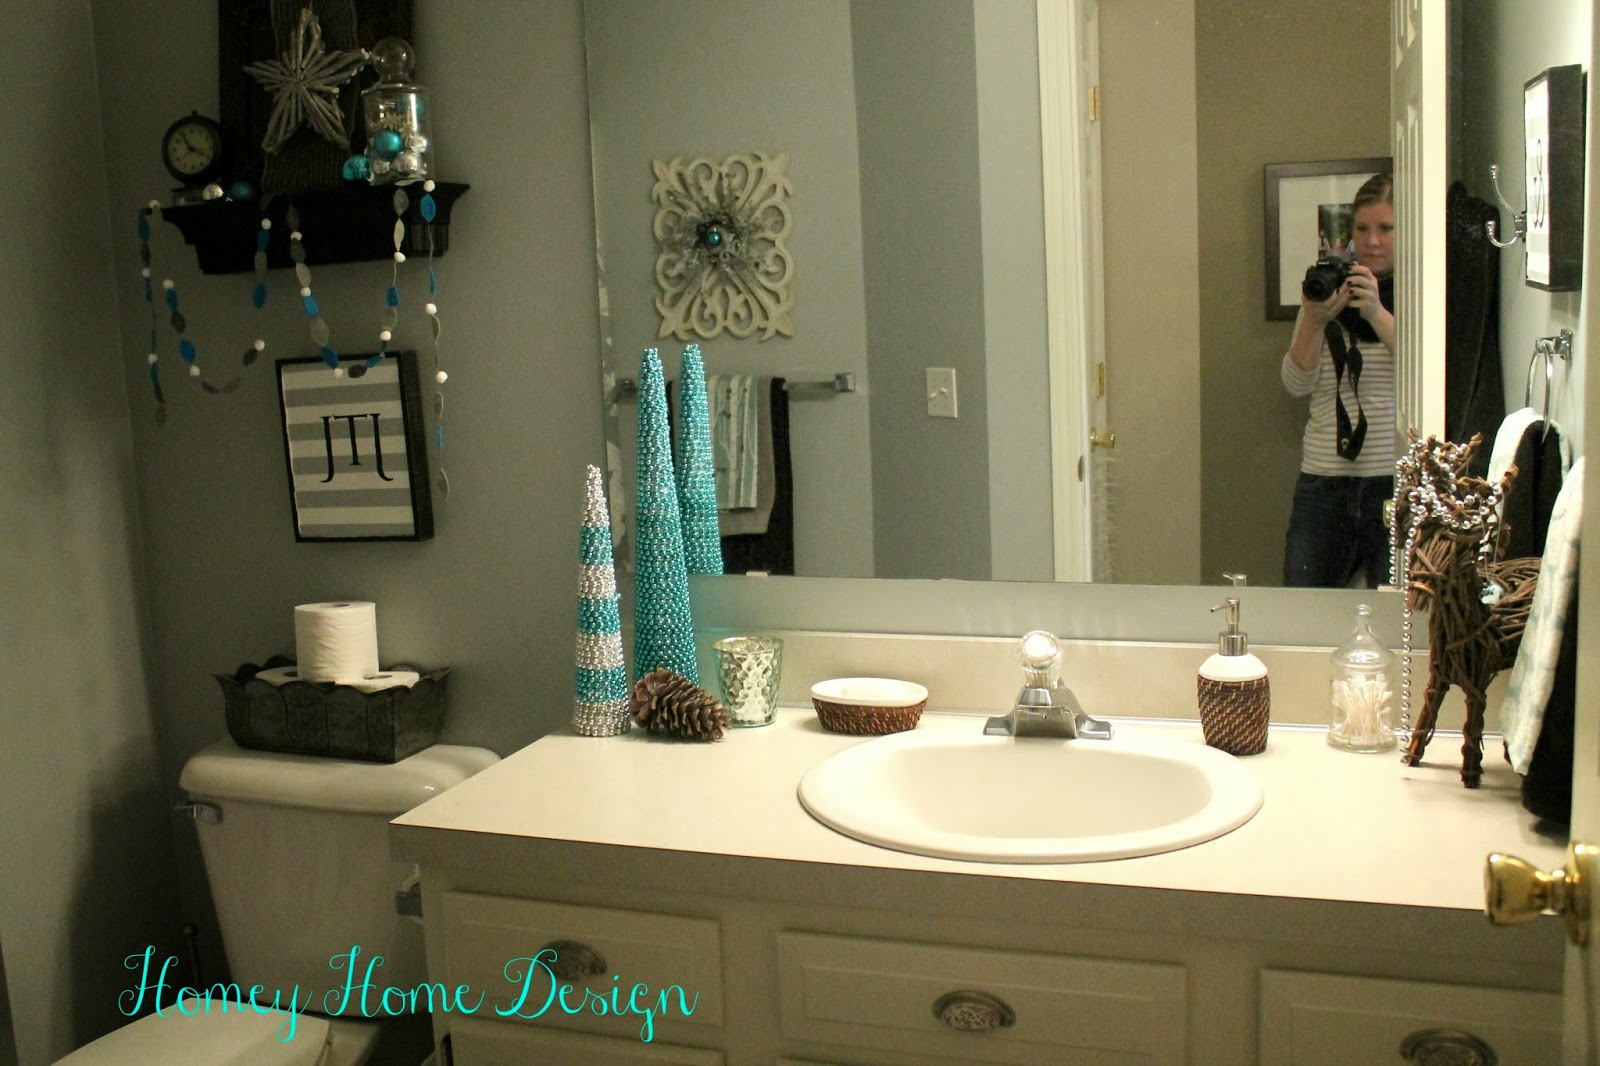 Homey home design bathroom christmas ideas for Bathroom ideas for towels